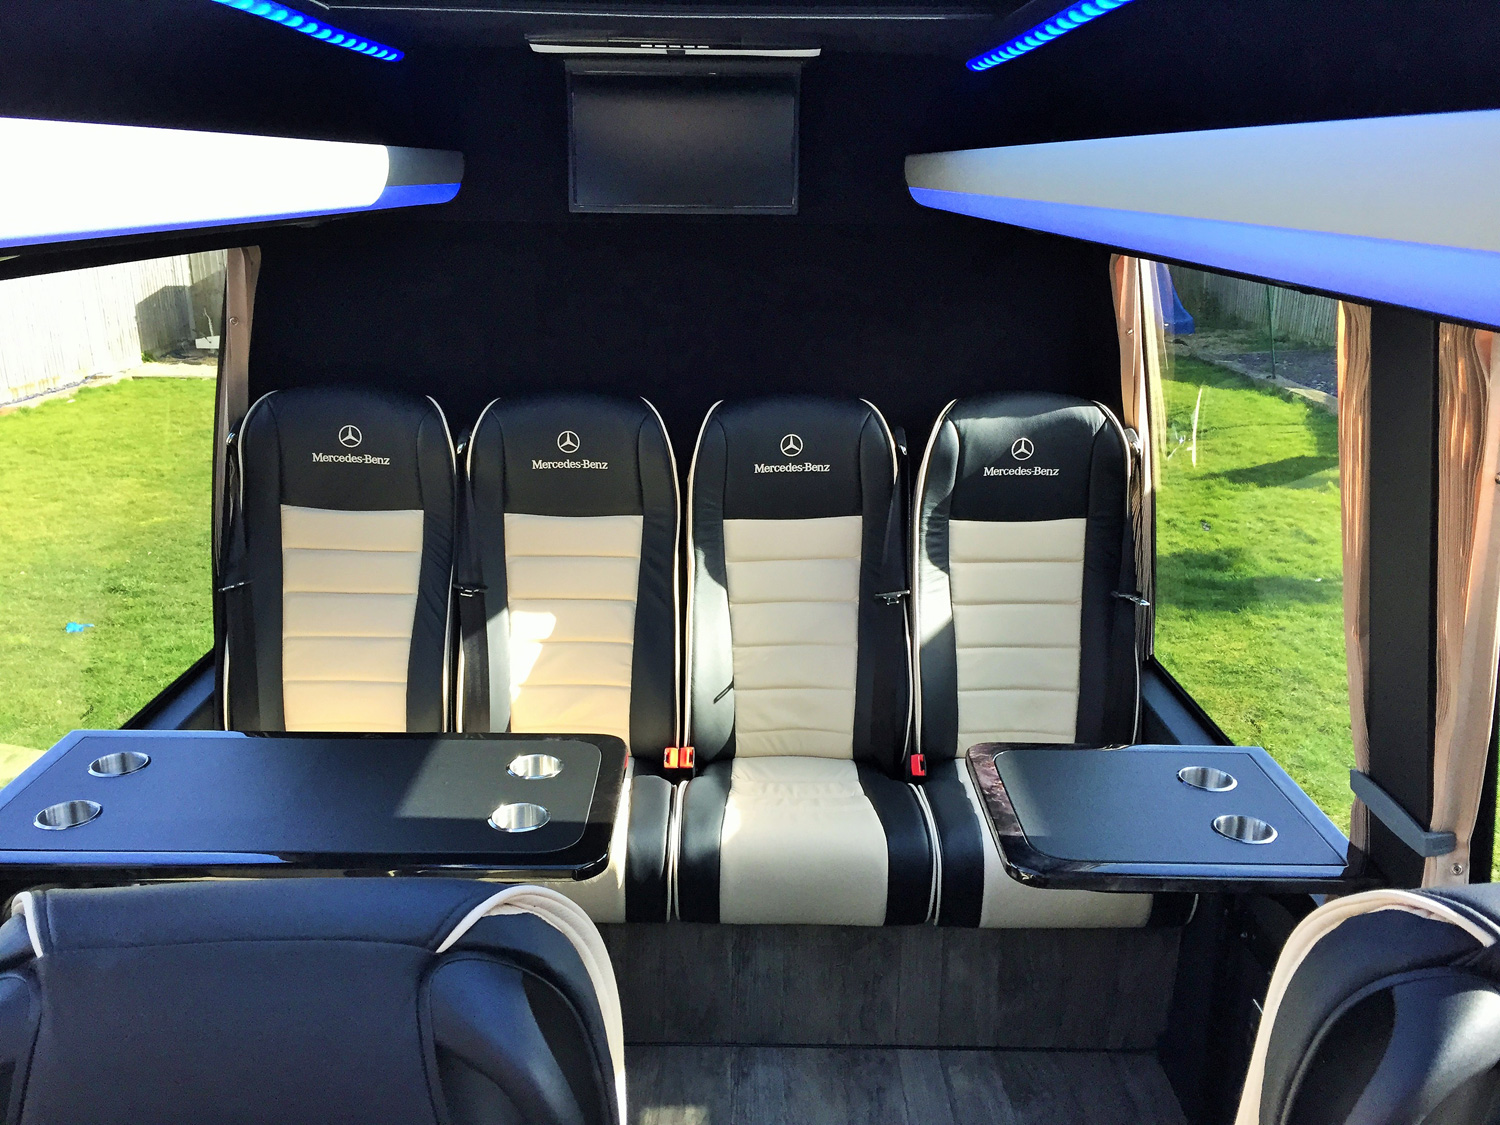 Mercedes-Benz 16 Seater VIP Interior Rear Seats